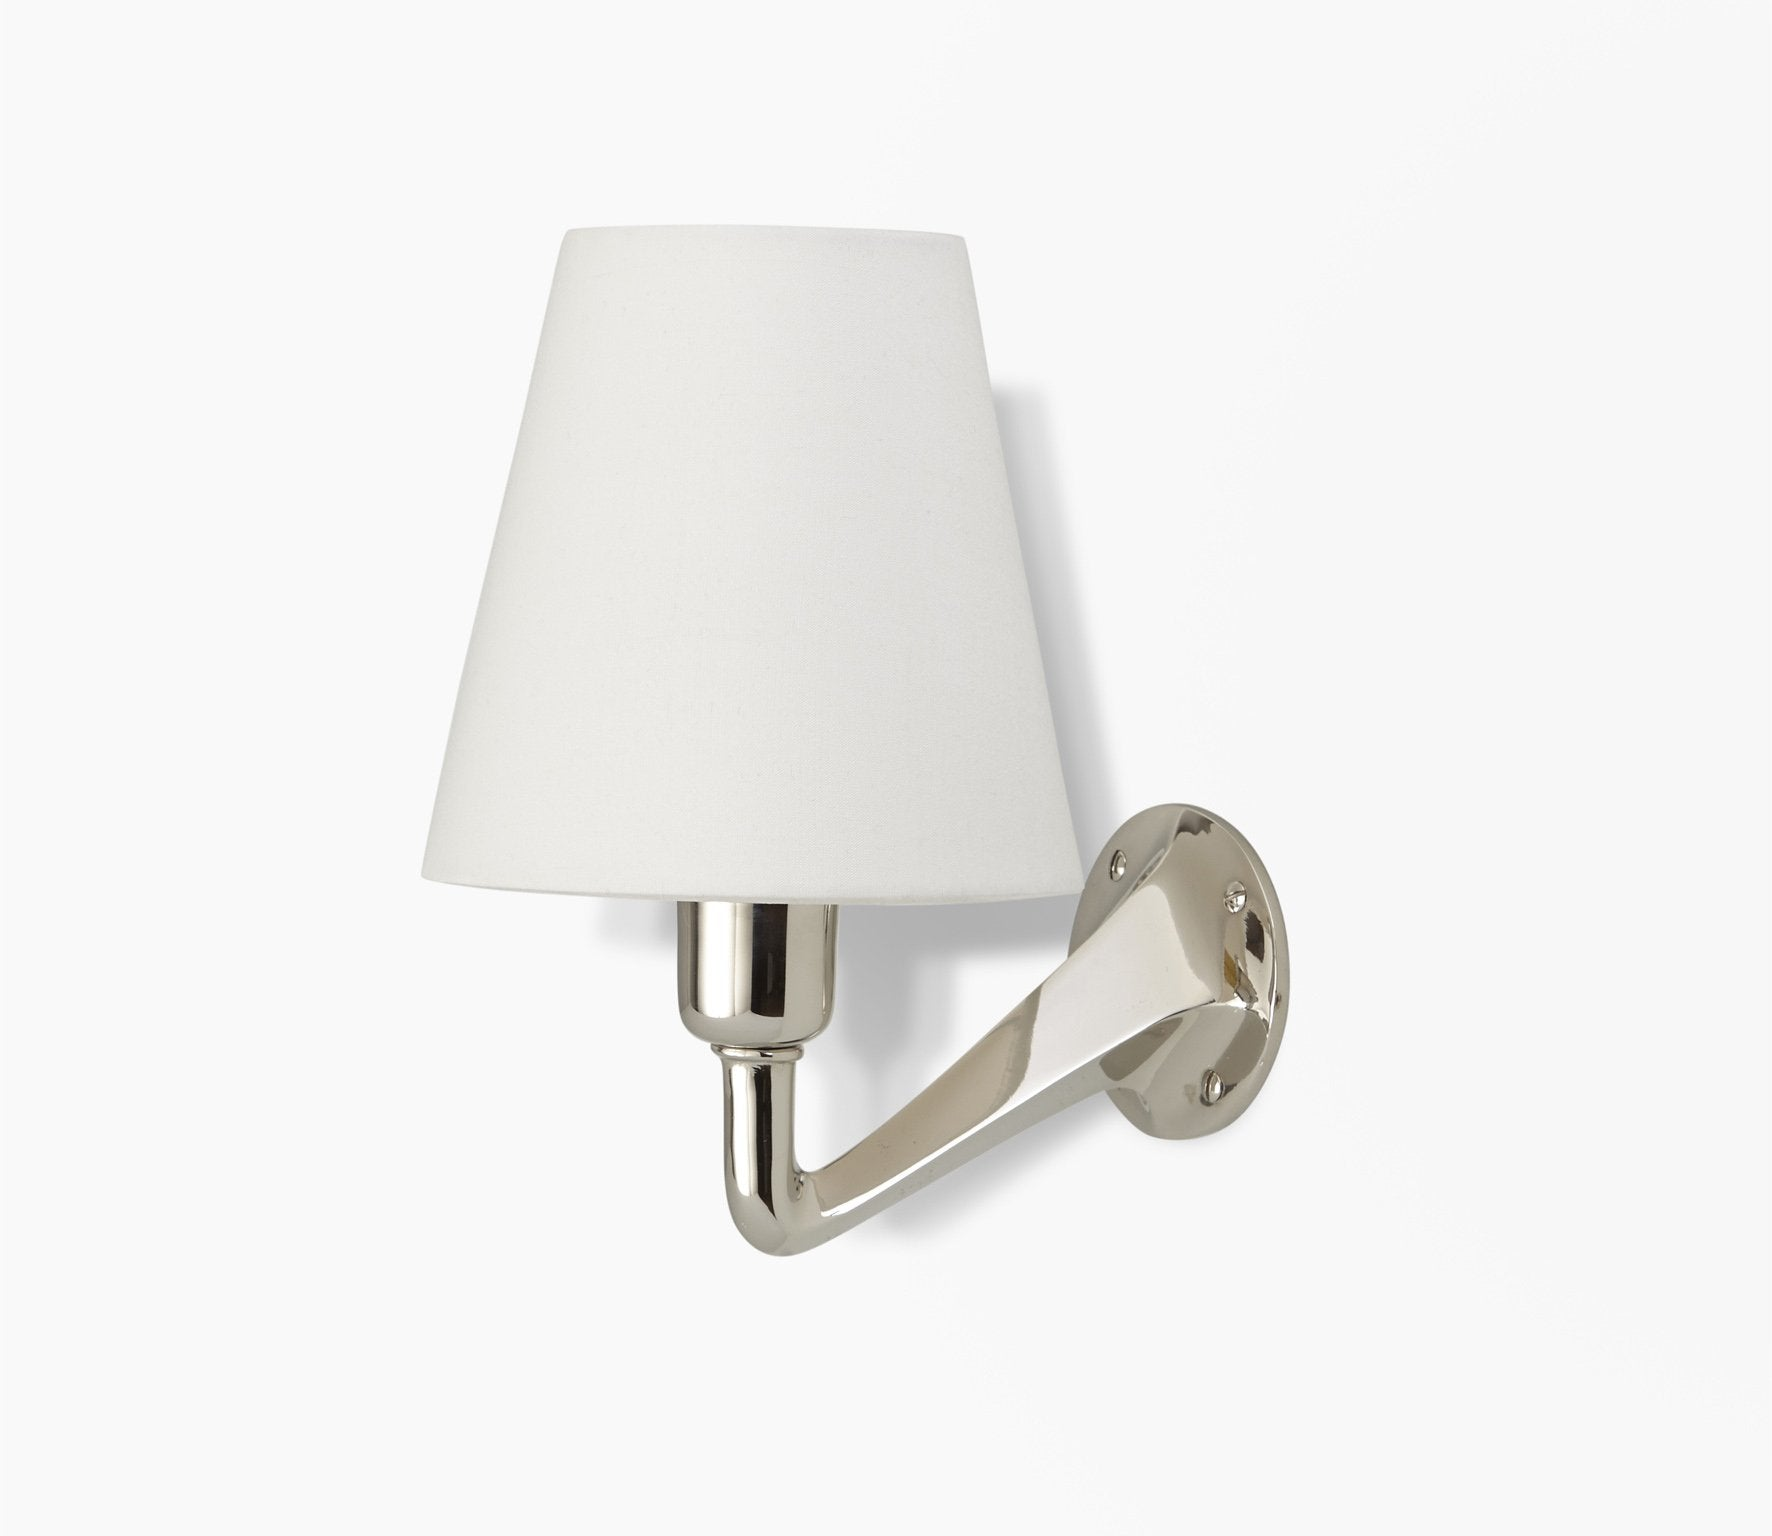 Leila Wall Light with Plain Empire Shade Product Image 11